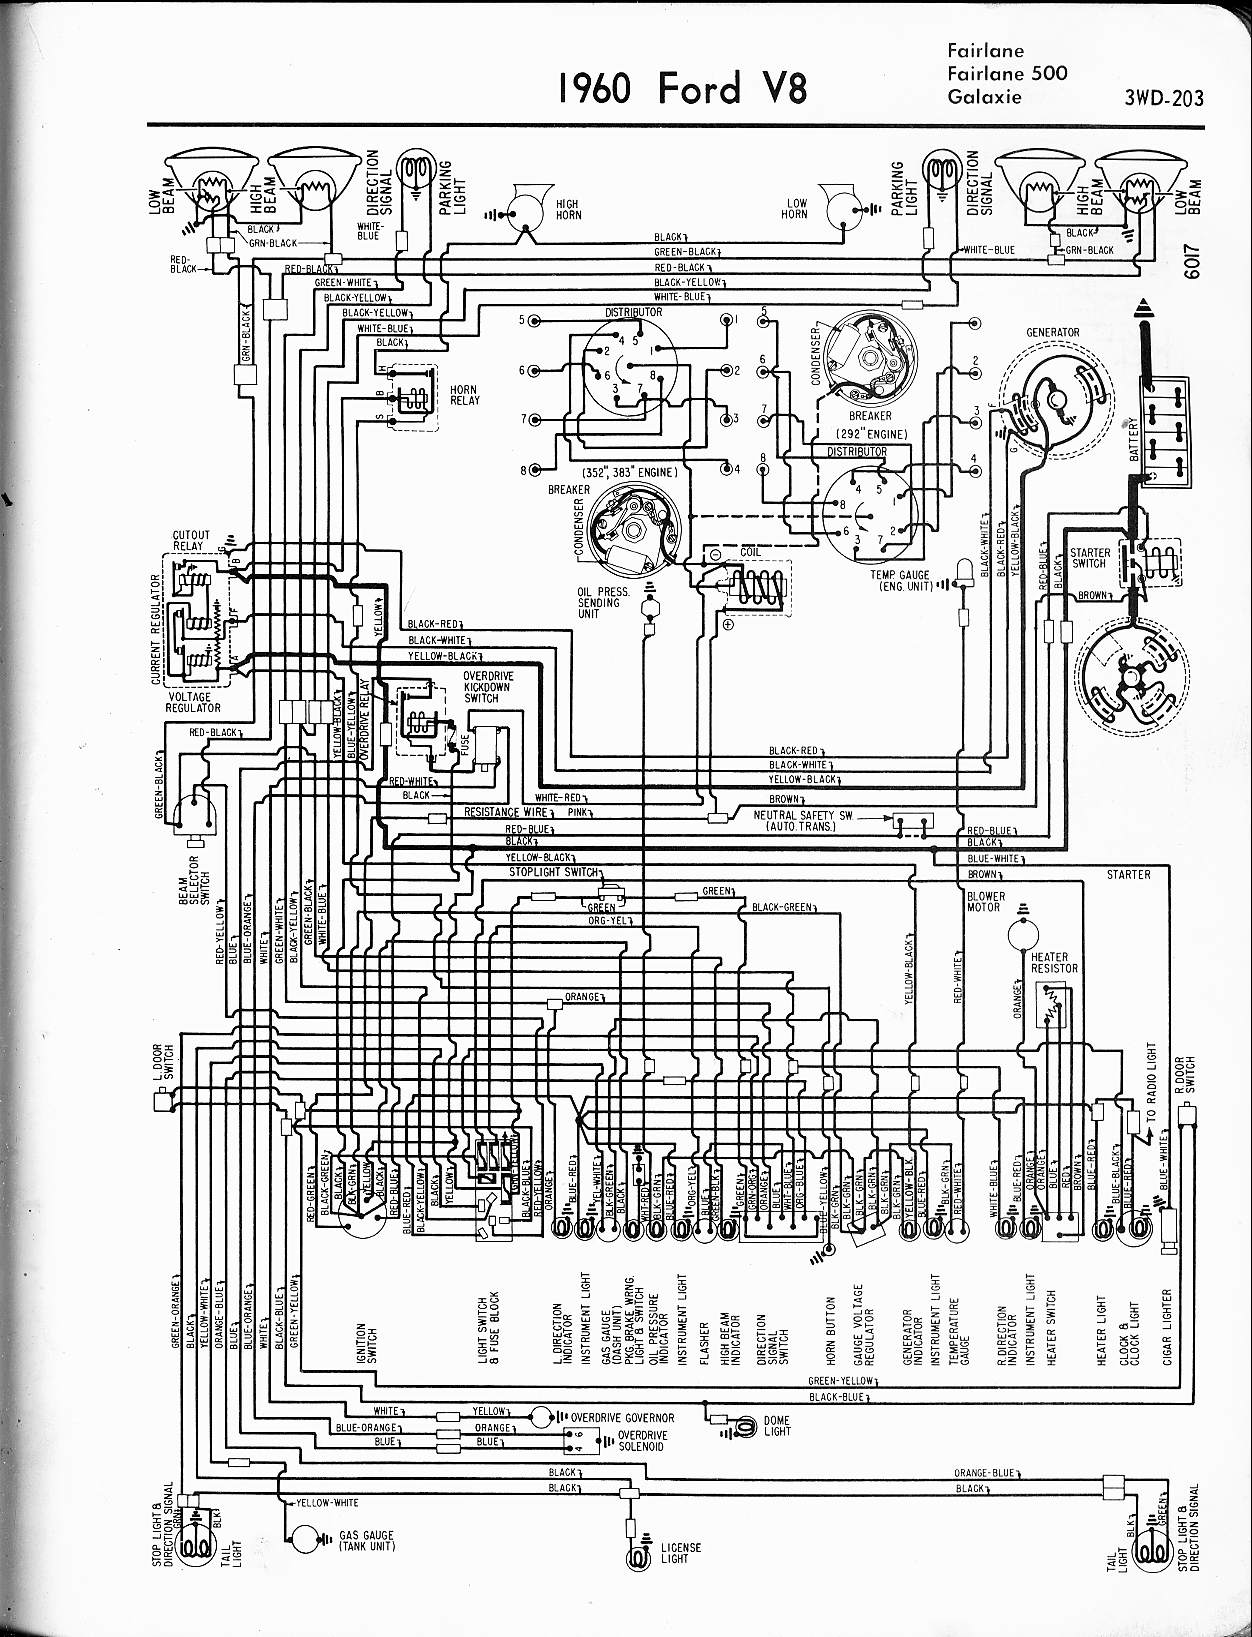 1955 ford fairlane wiring diagram wiring diagram library